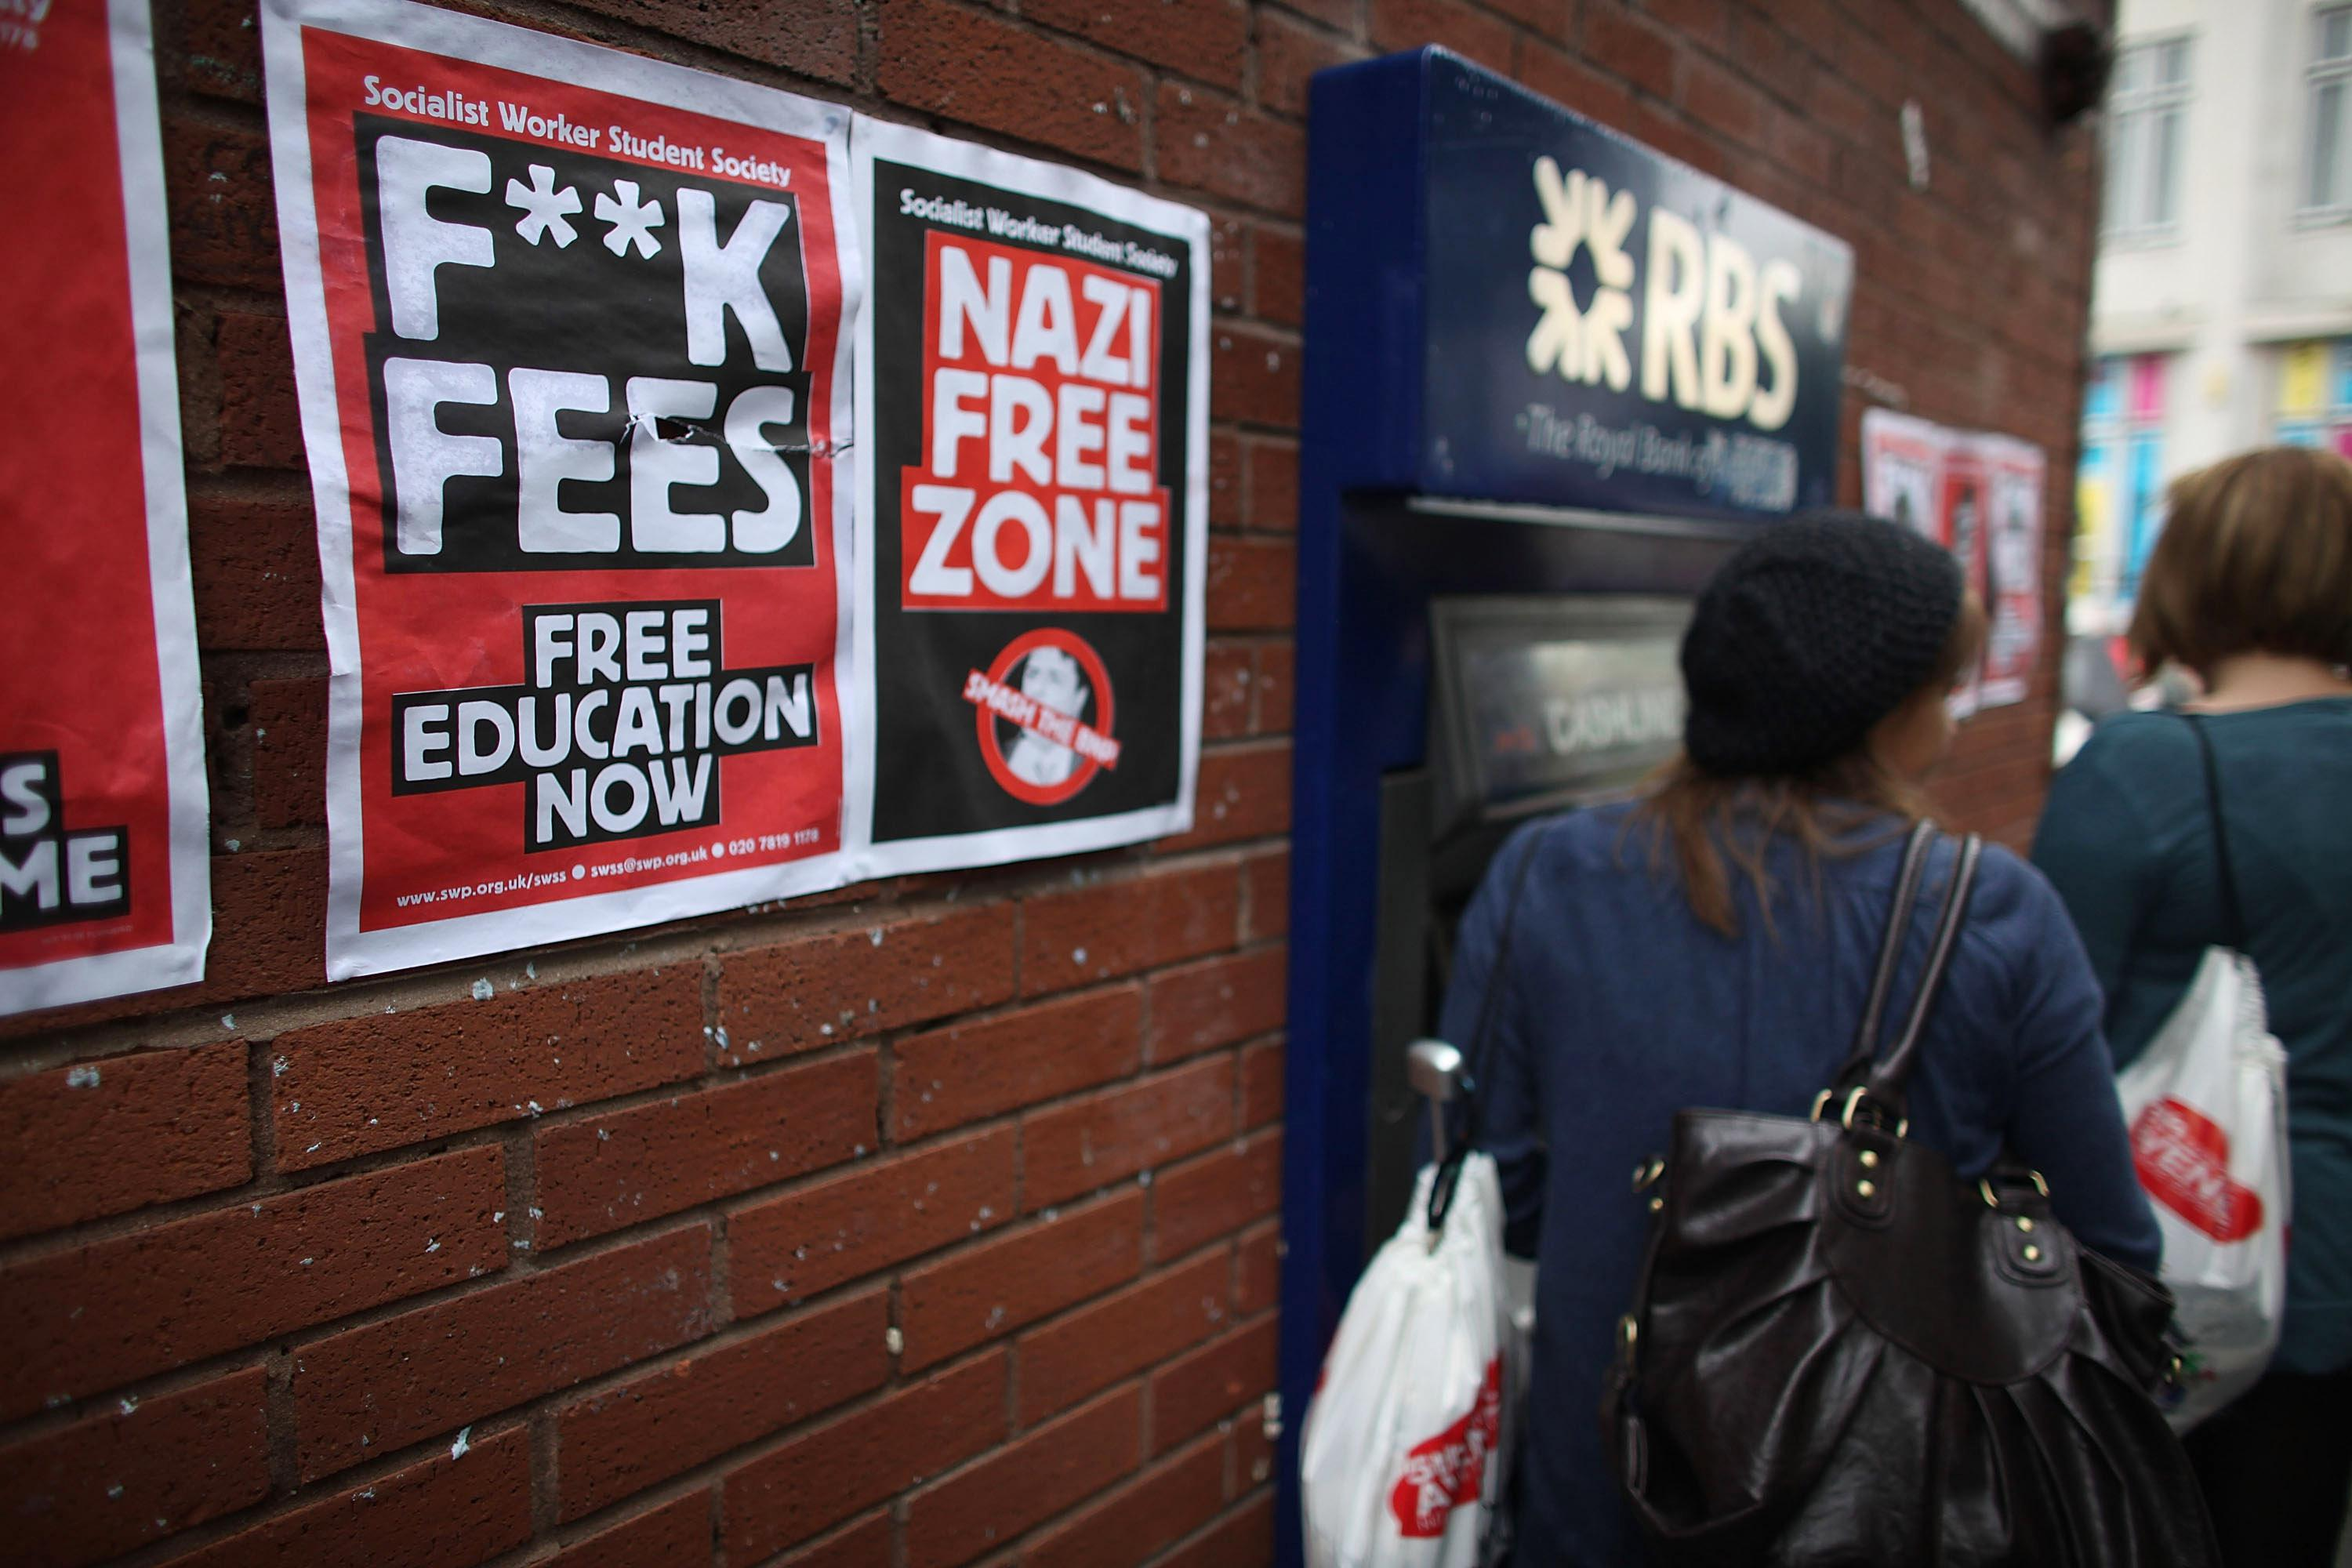 Students arriving for Manchester University's freshers week queue up at a cash machine to draw money on Sept. 22, 2009, in Manchester, England.